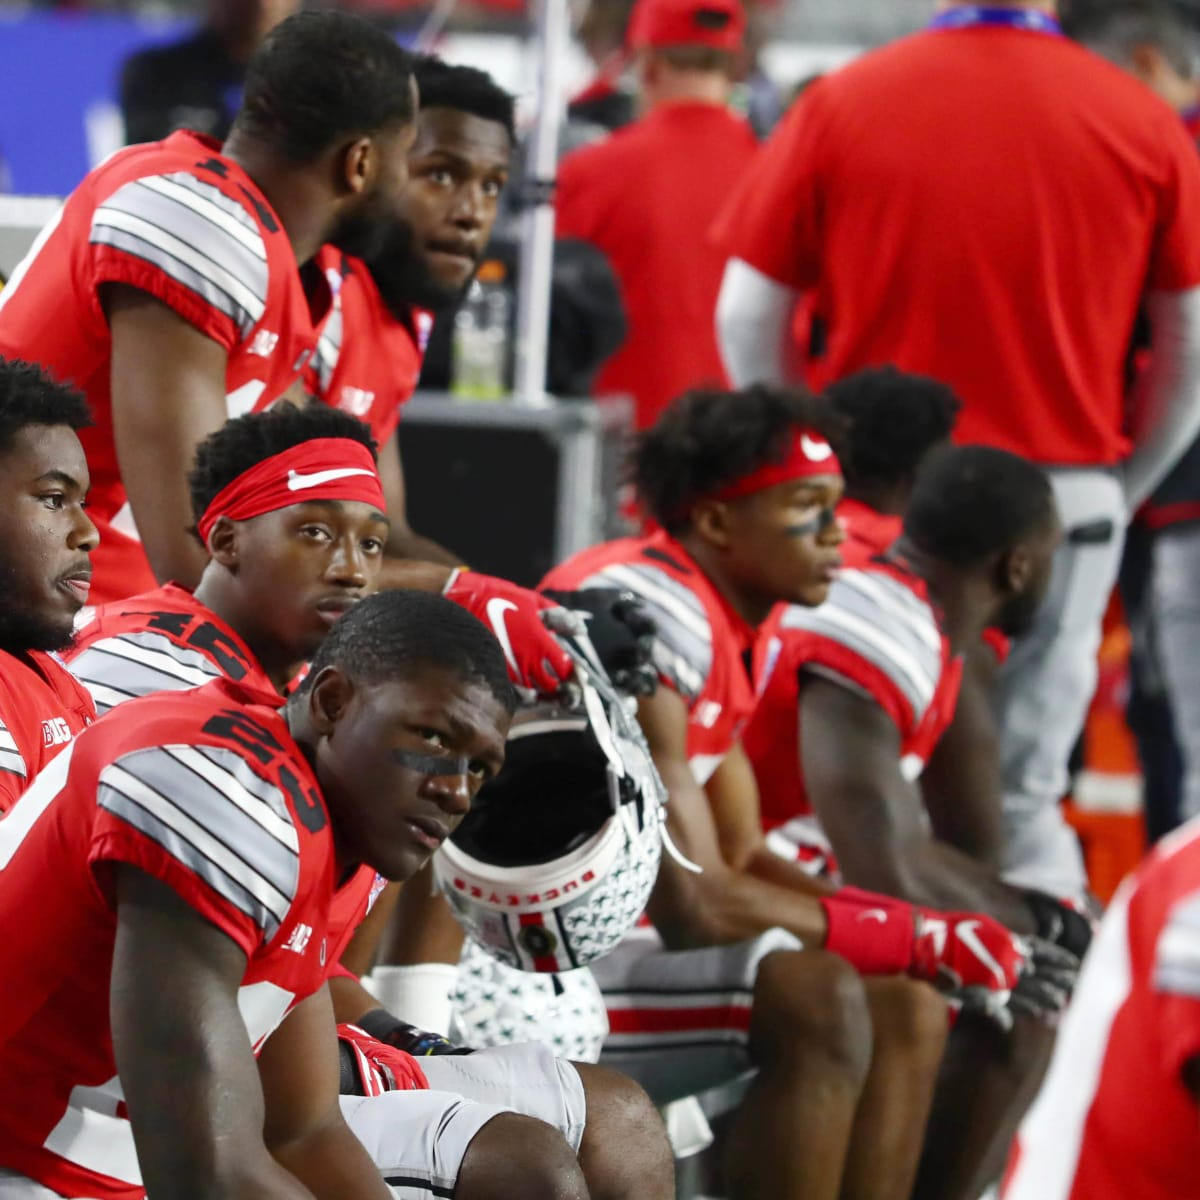 Ohio State S Mistakes Prove Costly In Playoff Semifinal Loss To Clemson Sports Illustrated